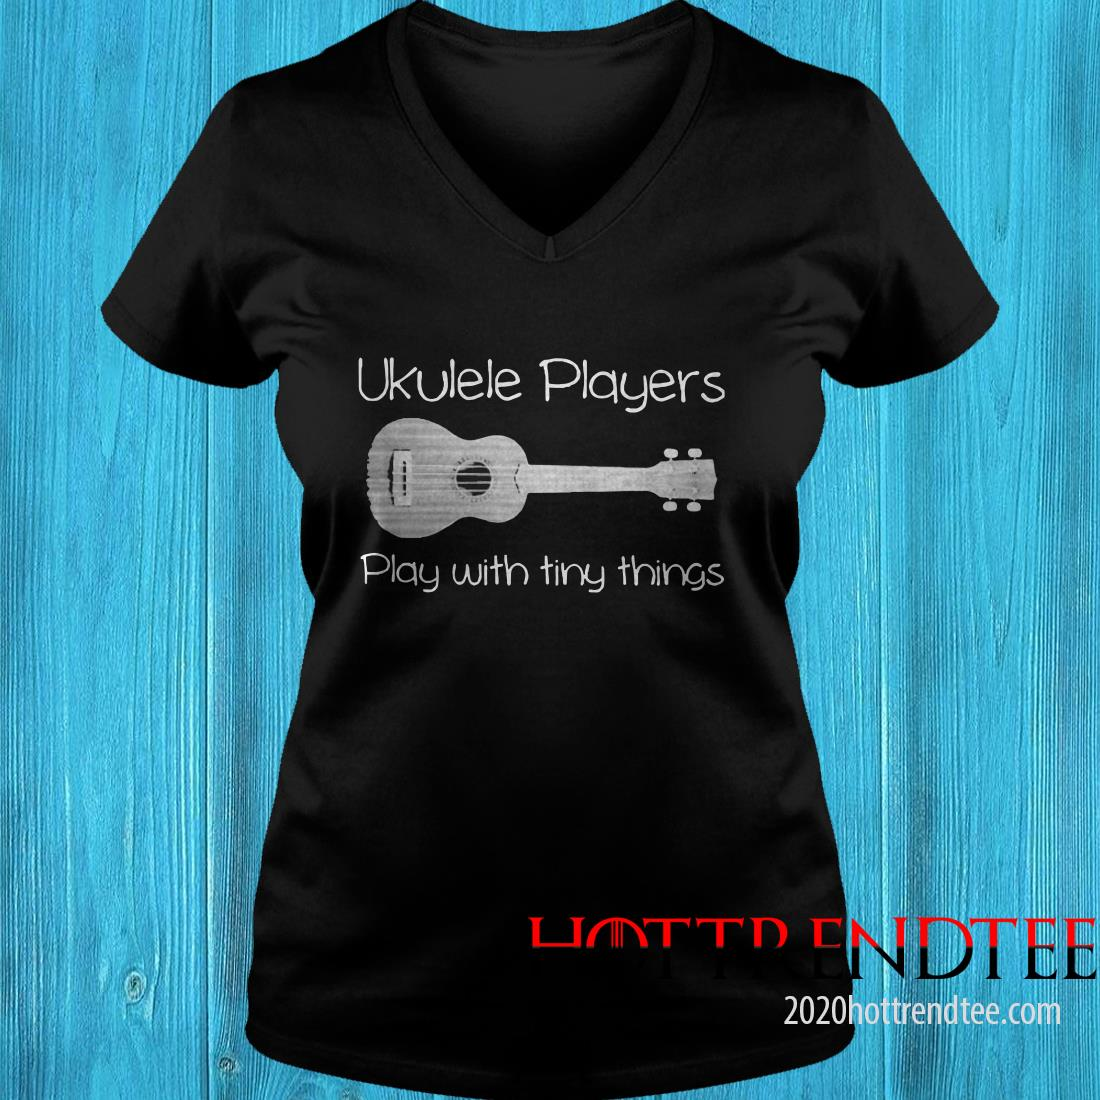 Ukulele Player Play With Tiny Things Women's T-Shirt